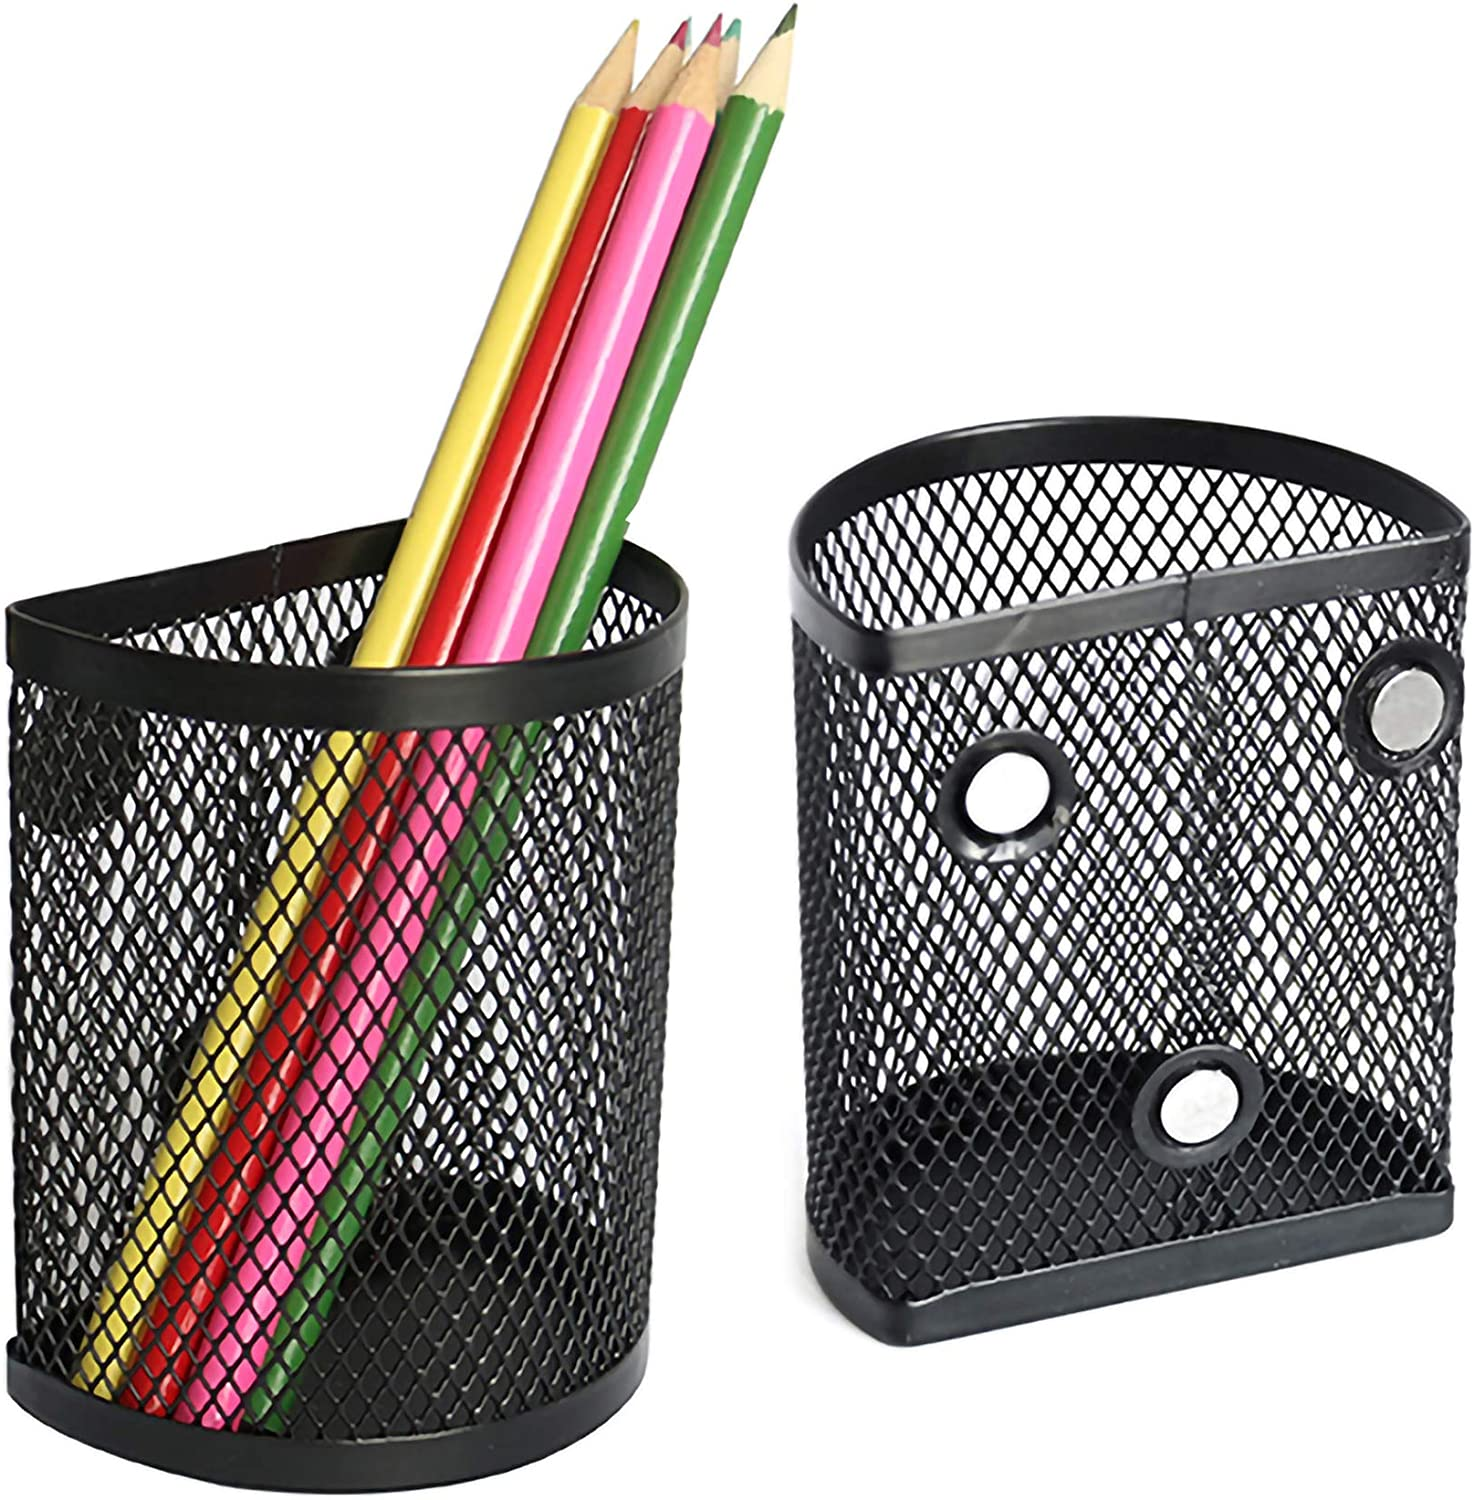 LUCYCAZ Magnetic Pencil Holder Semicircle Metal Basket Strong Magnets Locker Organizer for Refrigerator Whiteboard and School Office 2 PCS